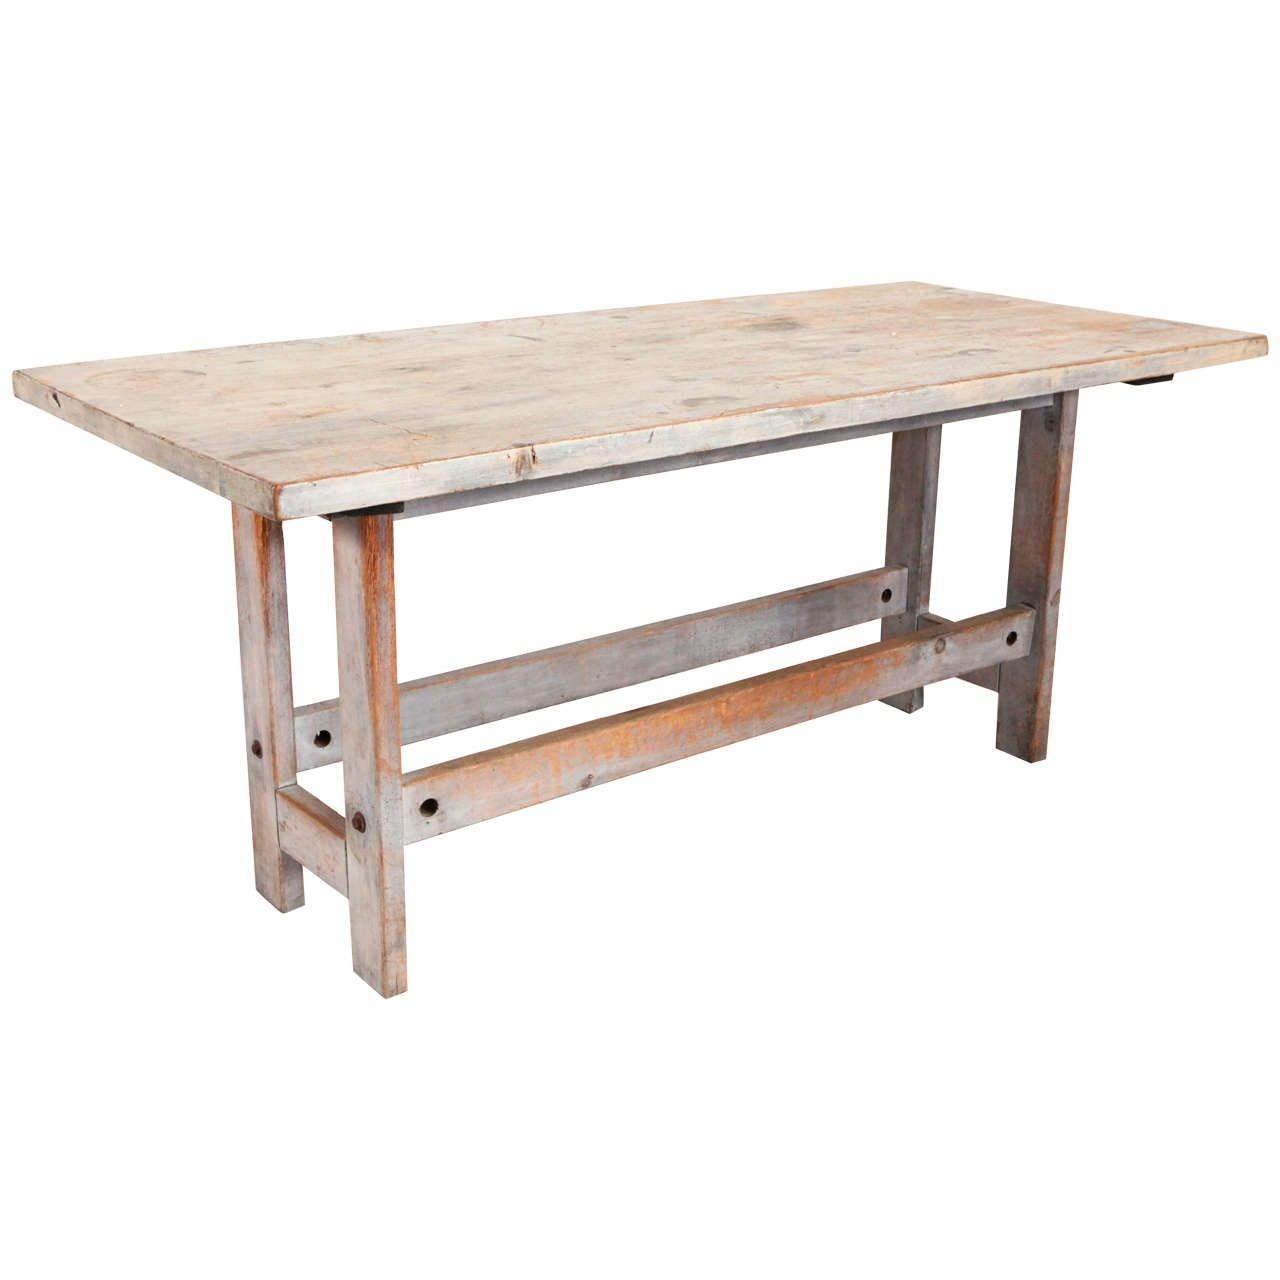 Rustic Grey Wash Farm Table From a unique collection of